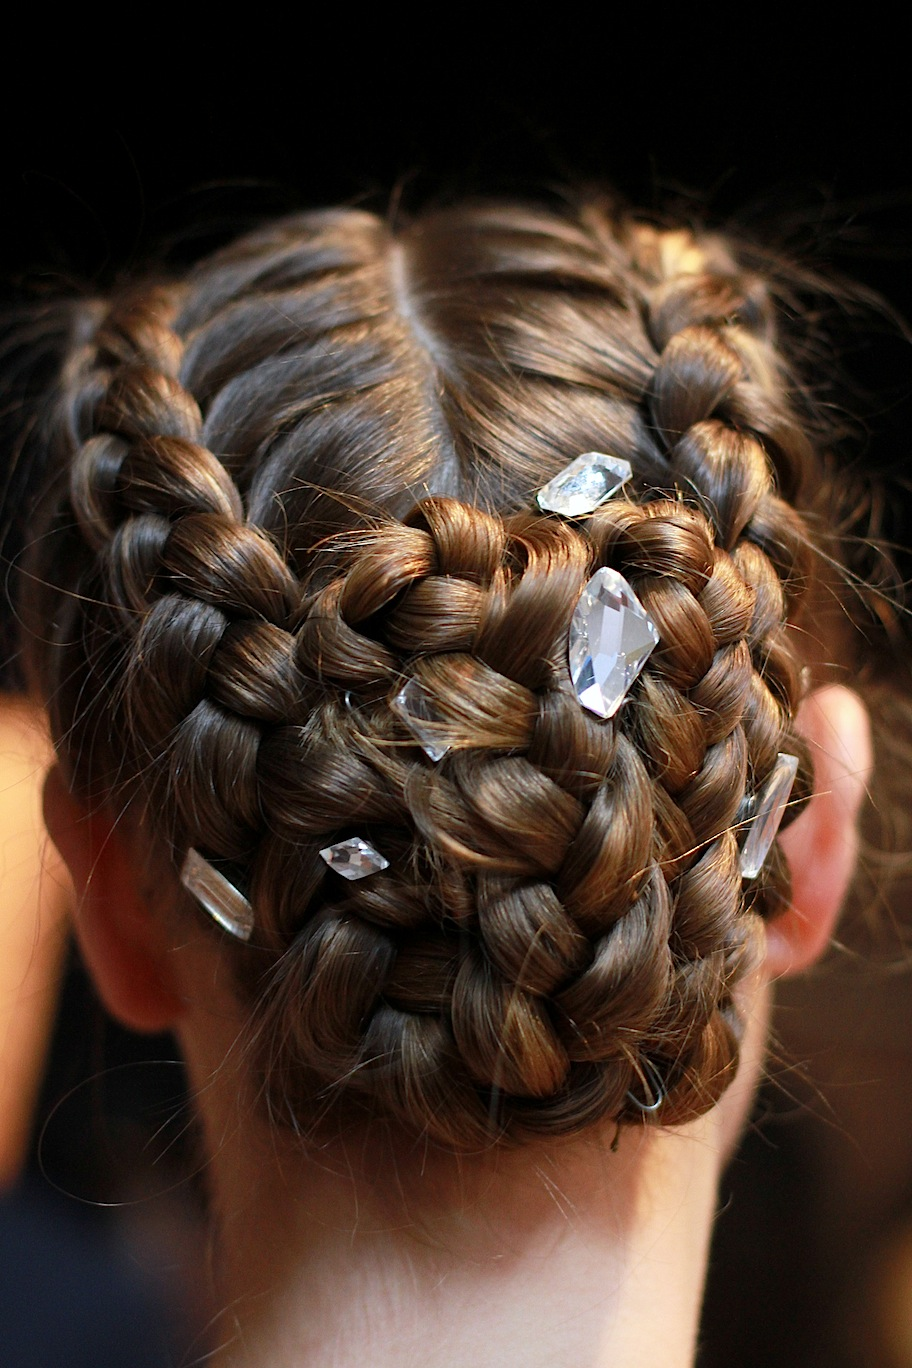 Bejeweled hair at Honor , by Bumble & Bumble.   Image:  The Greyest Ghost  for Cult of Pretty